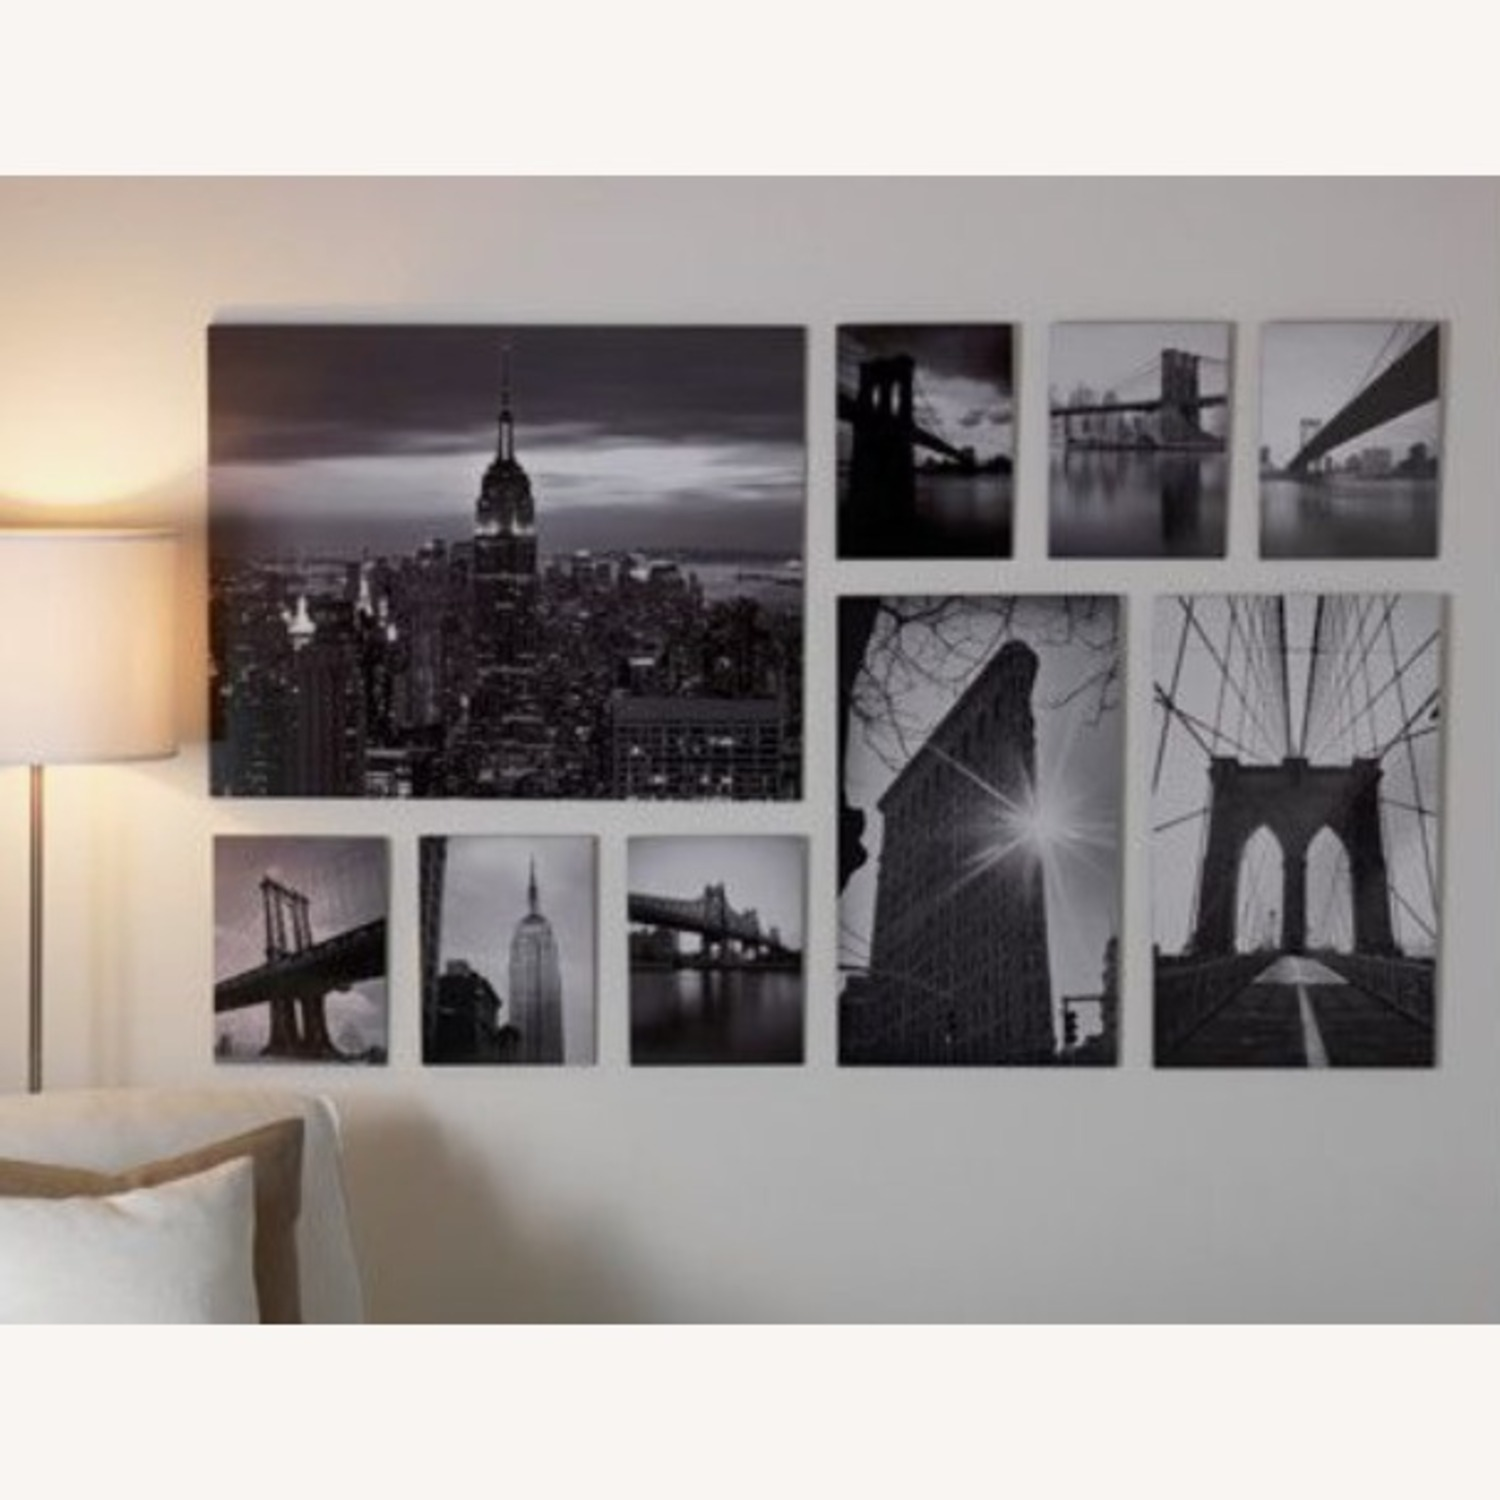 IKEA NYC Black & White Photo Gallery Wall Set of 9 - image-2